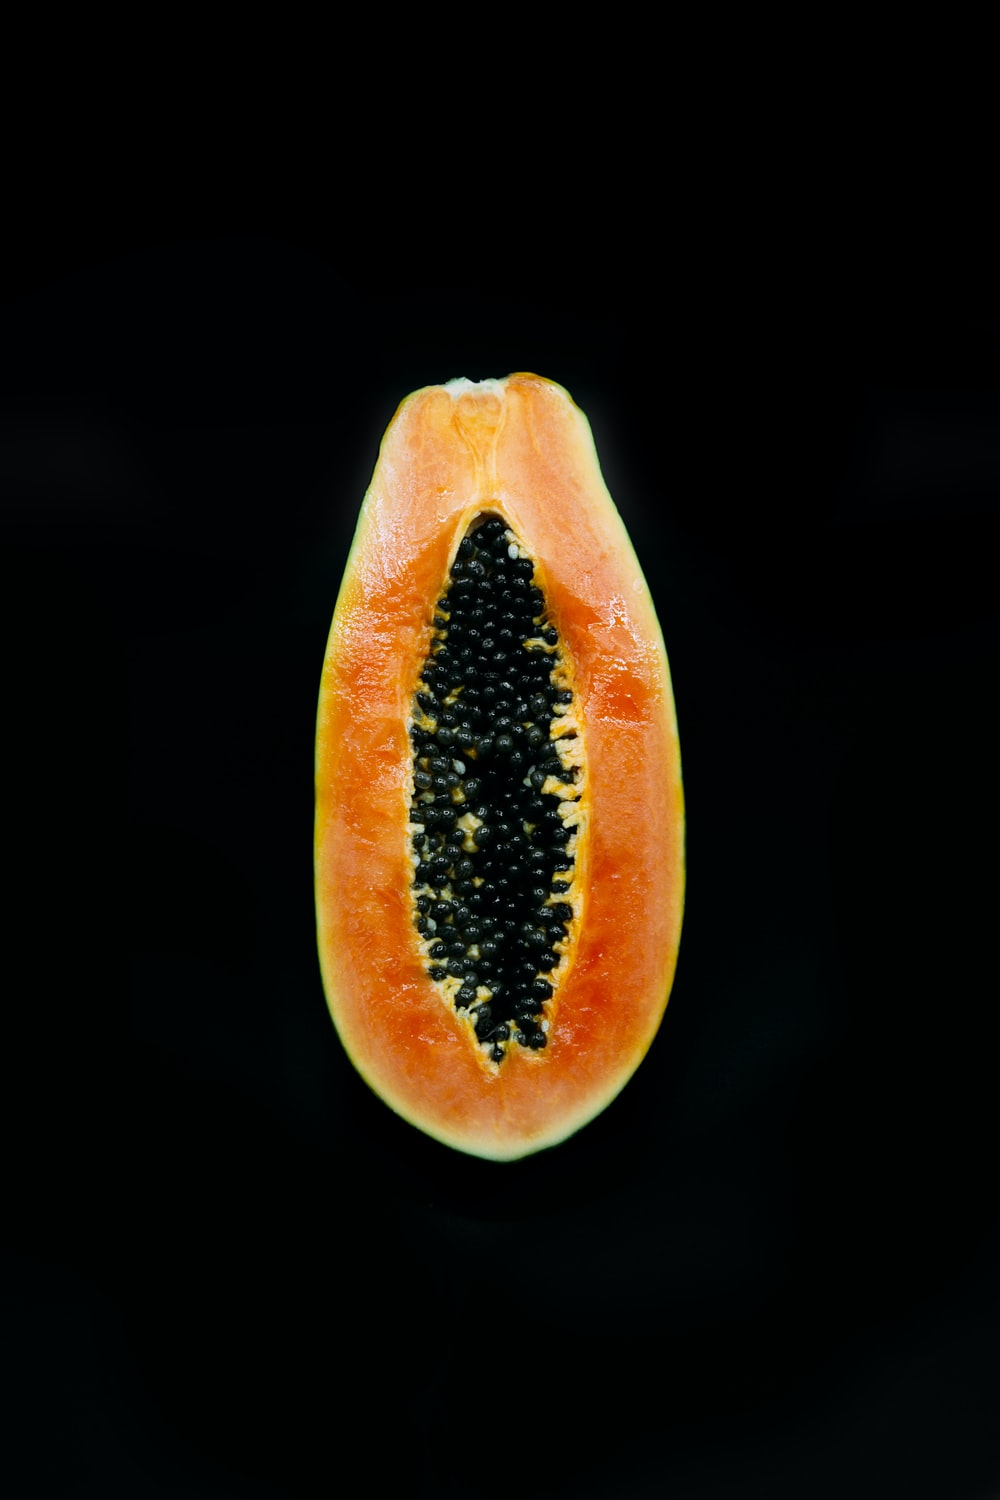 sliced tomato with black background